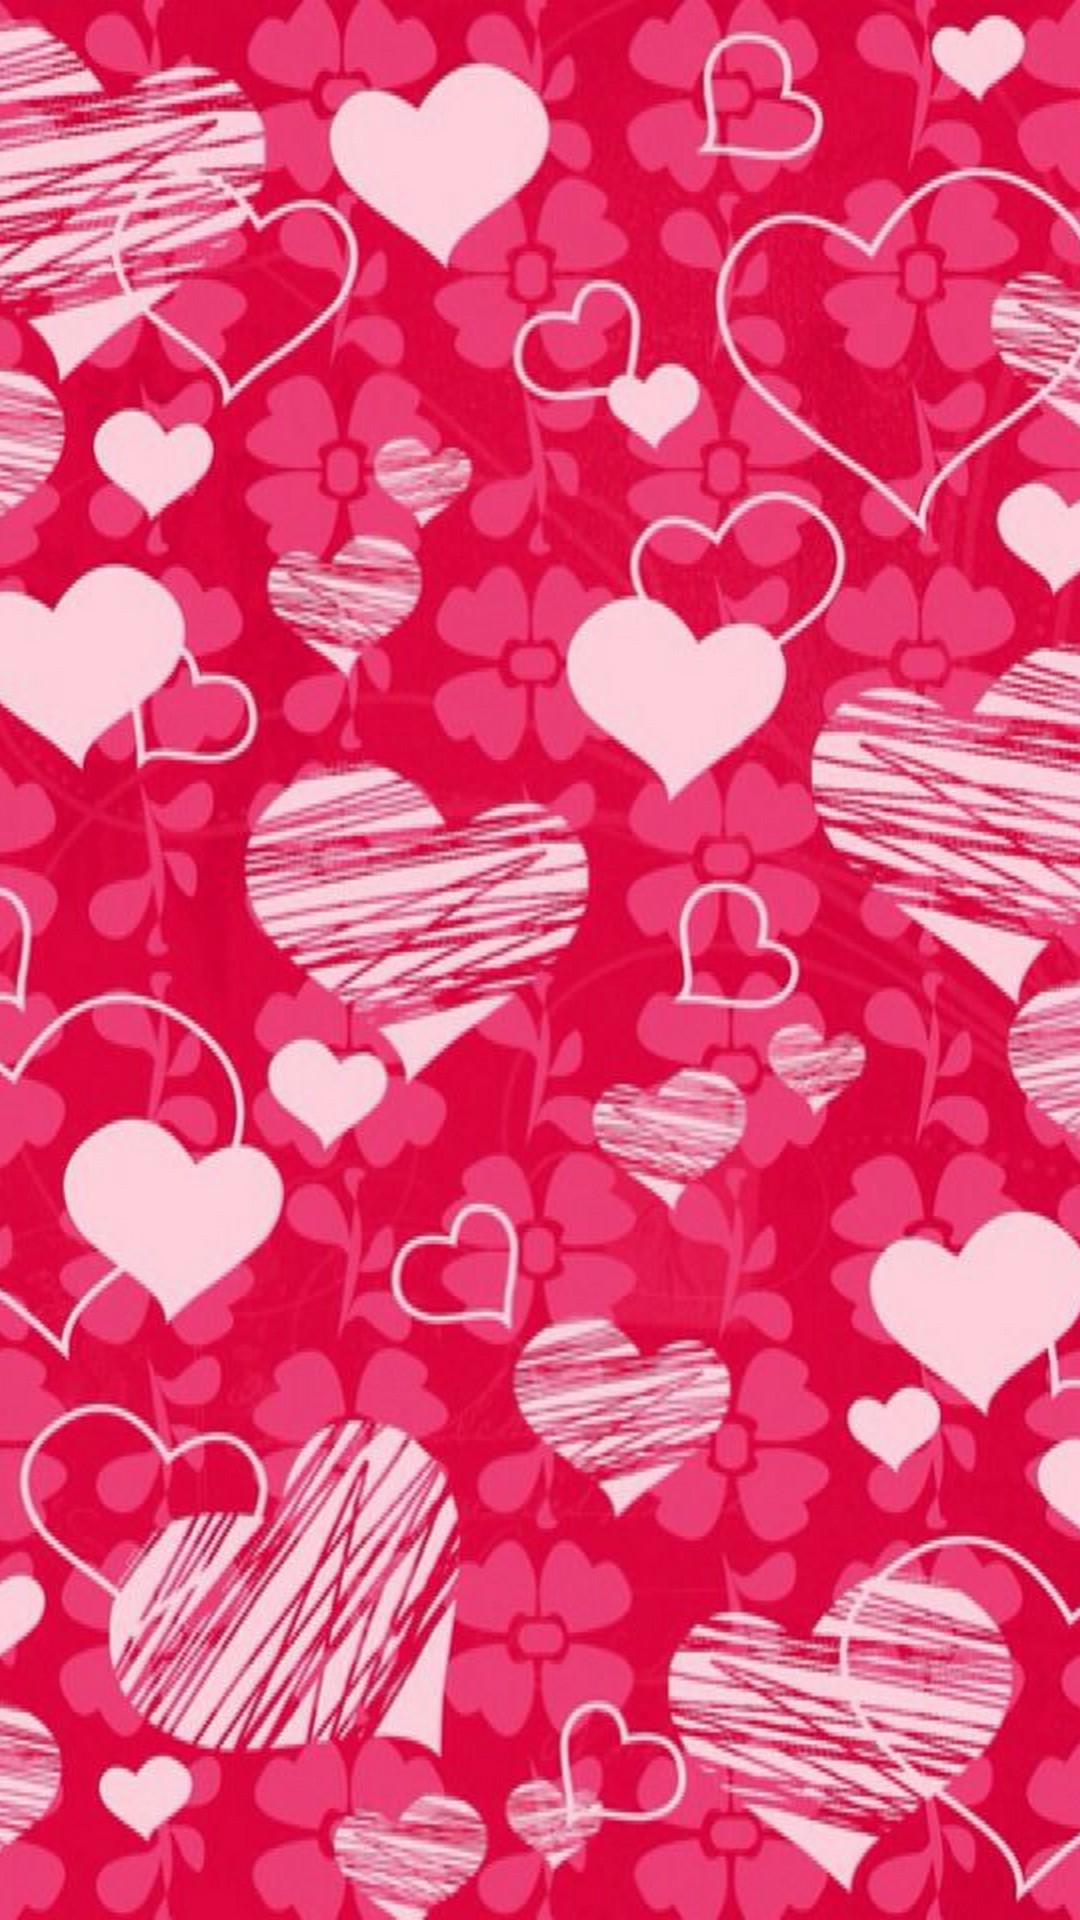 Heart Pattern Cute Iphone Wallpaper Iphone Wallpaper